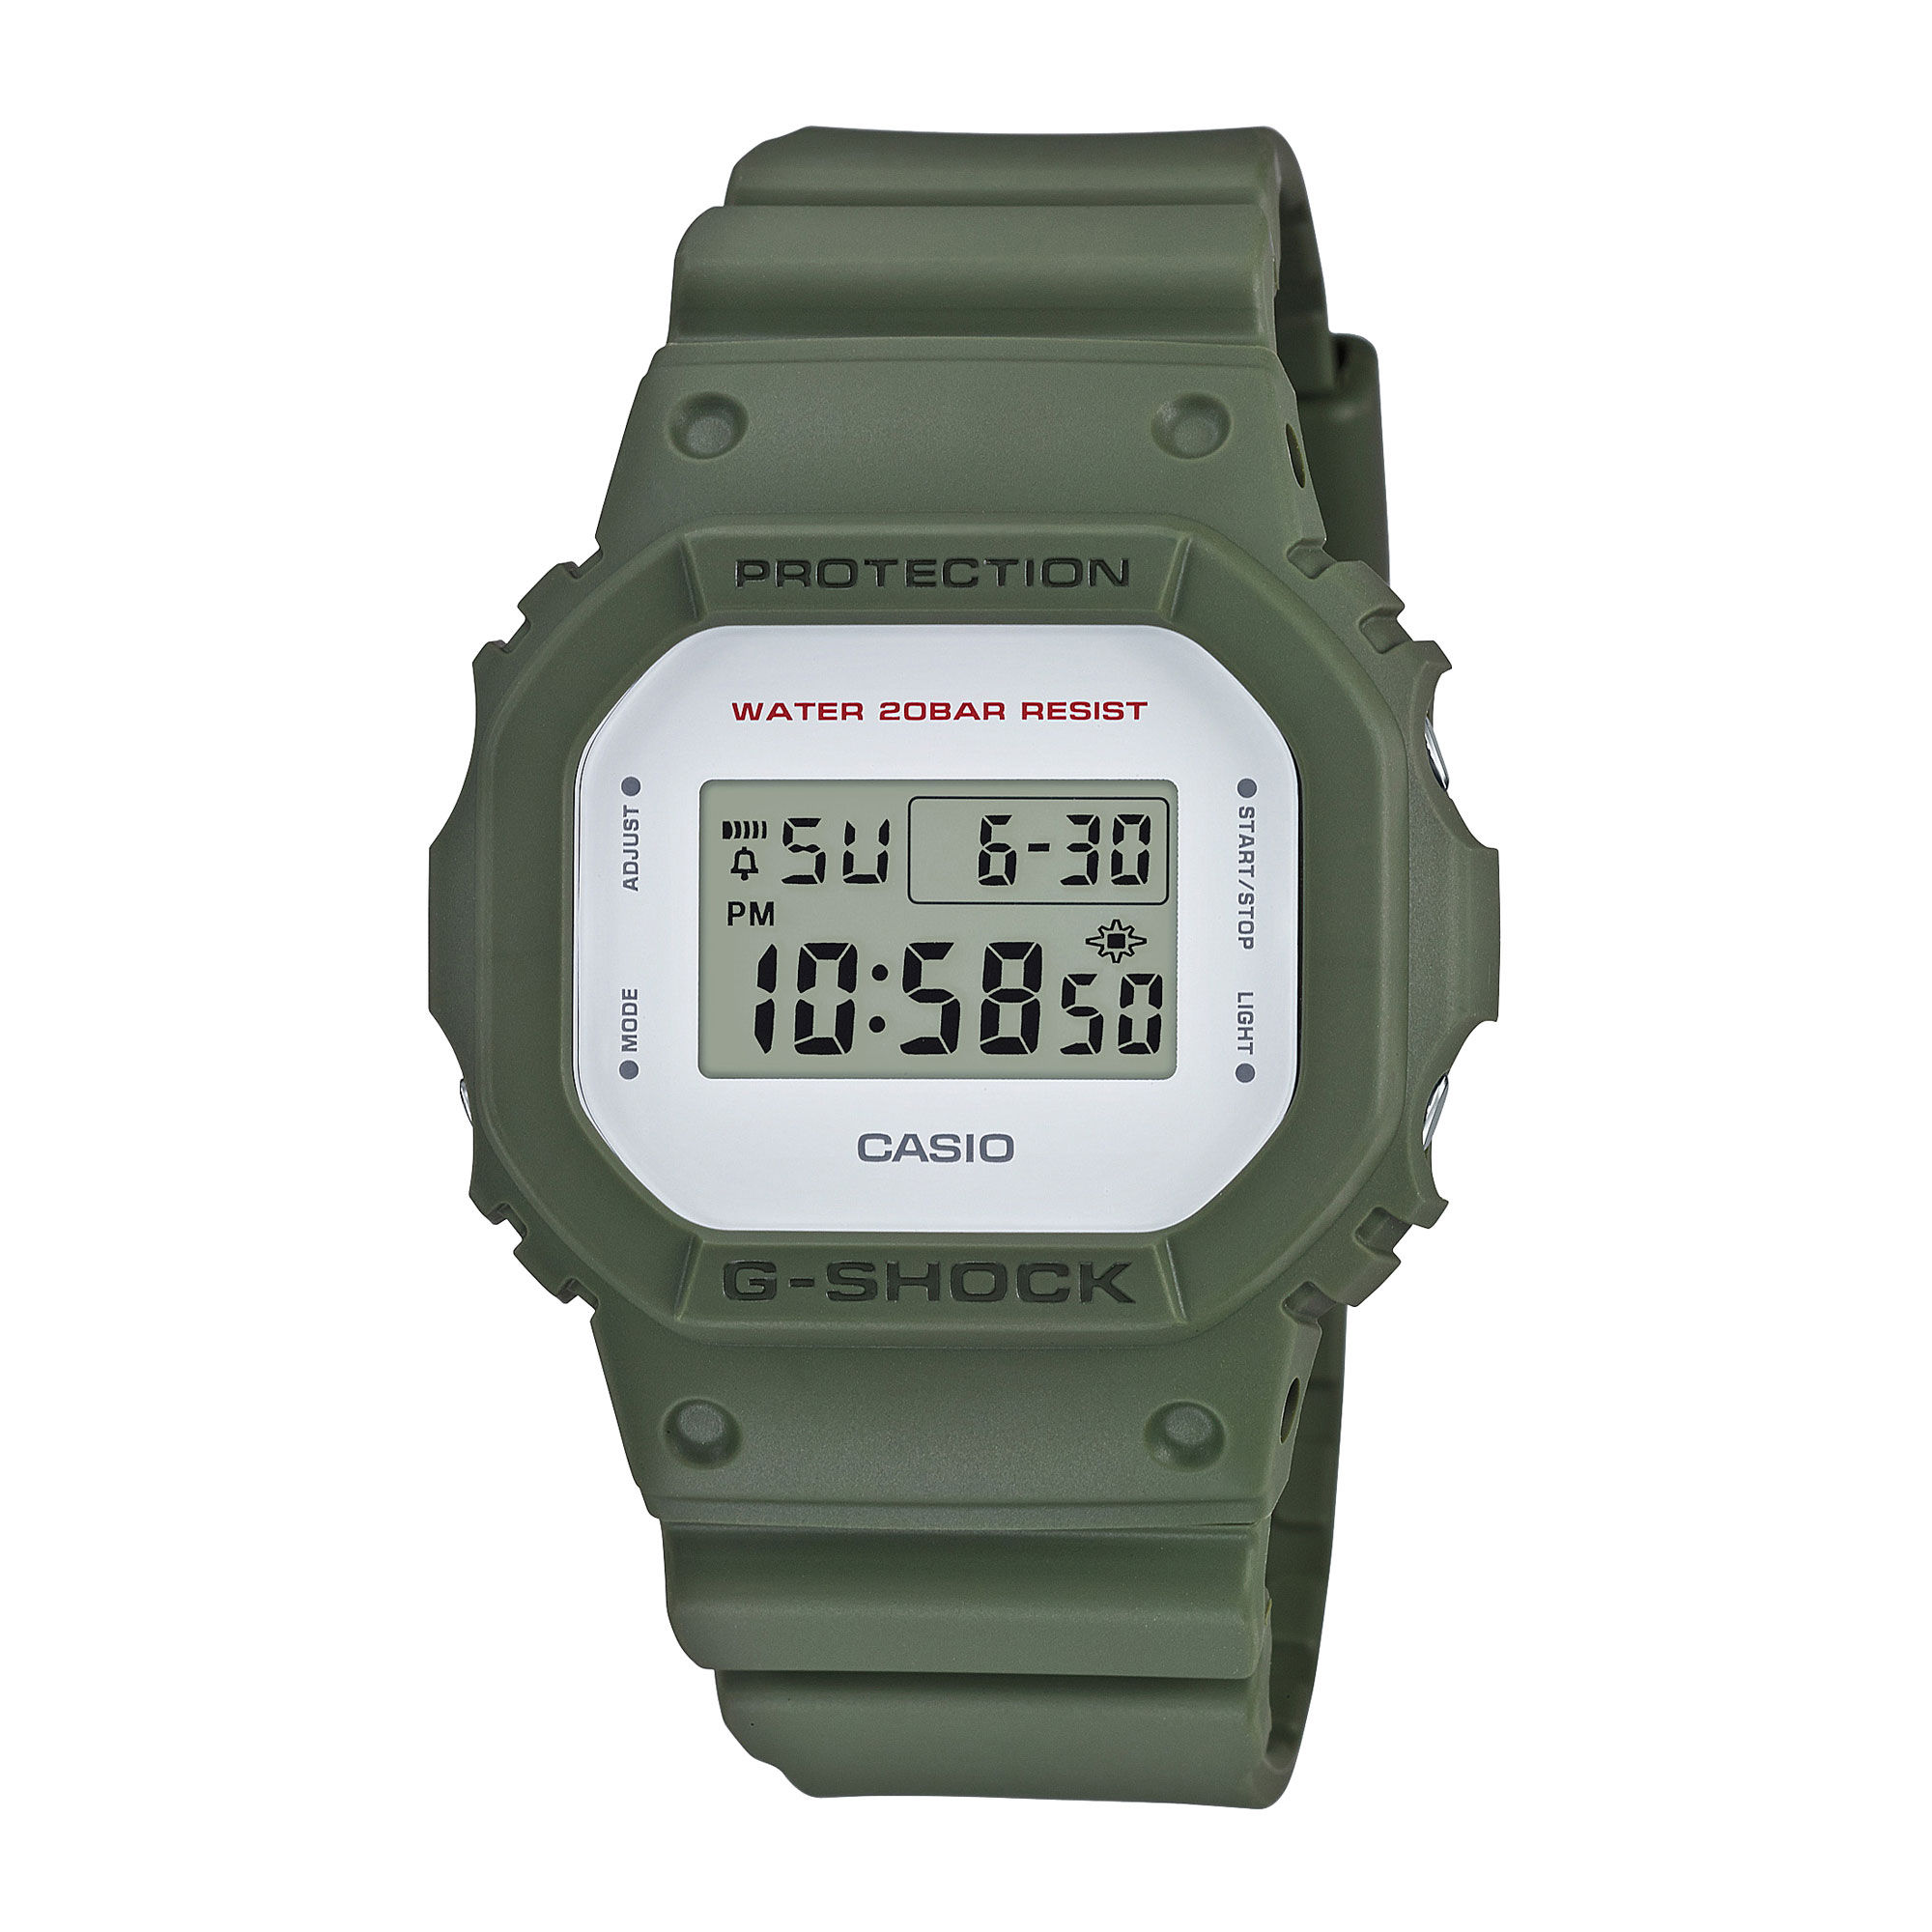 Casio G-Shock DW-5600M clean military